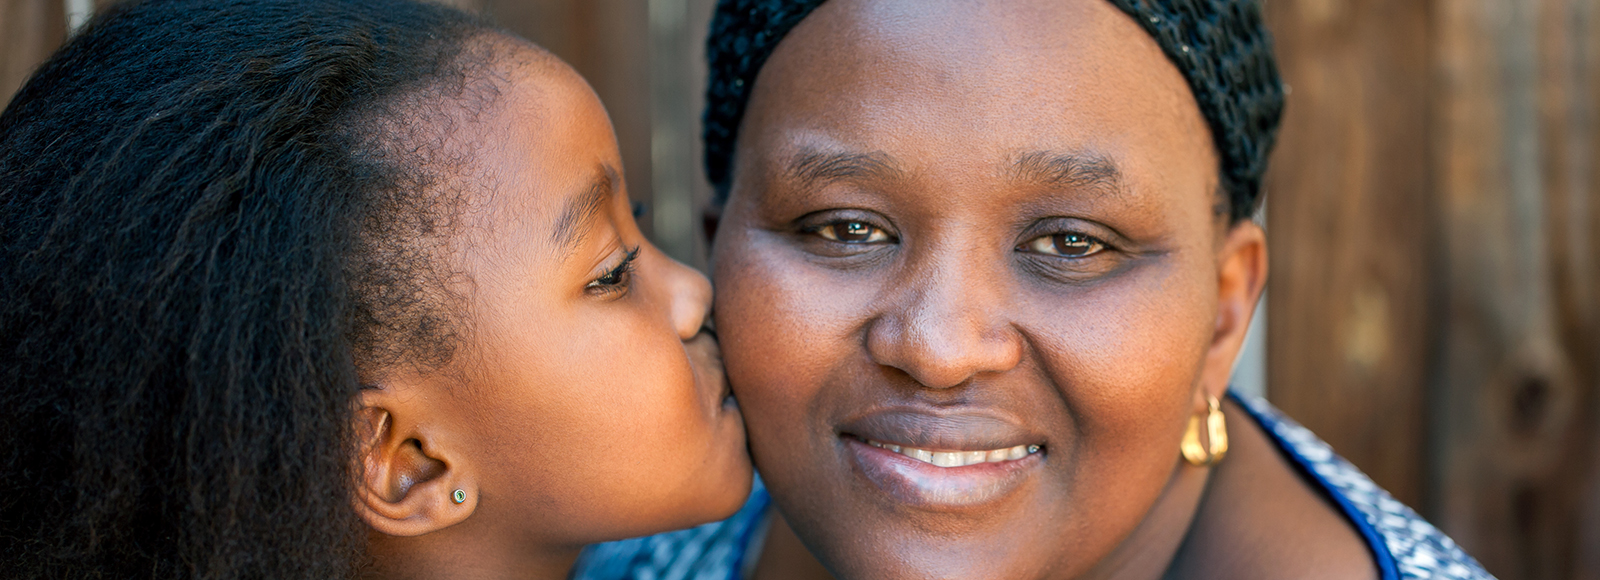 A child kisses her mother on the cheek